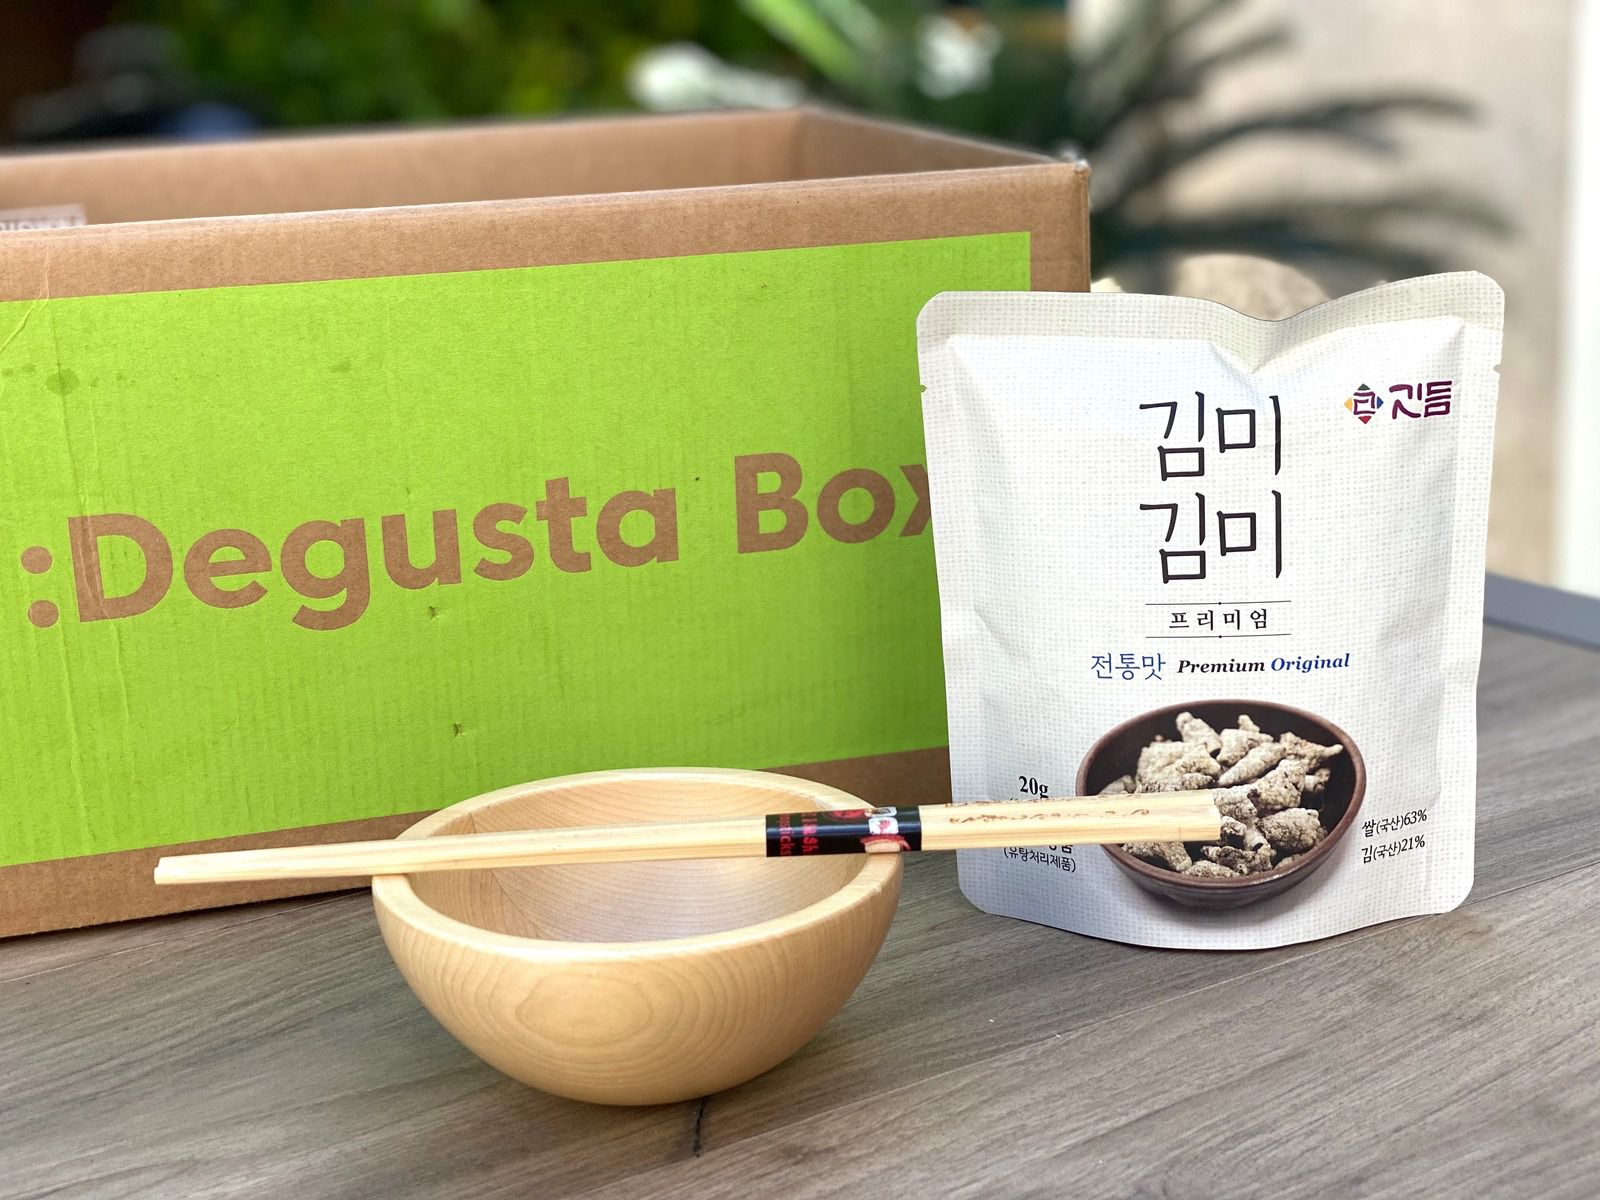 What's in the :Degusta Box : juin 2020 - Apéro